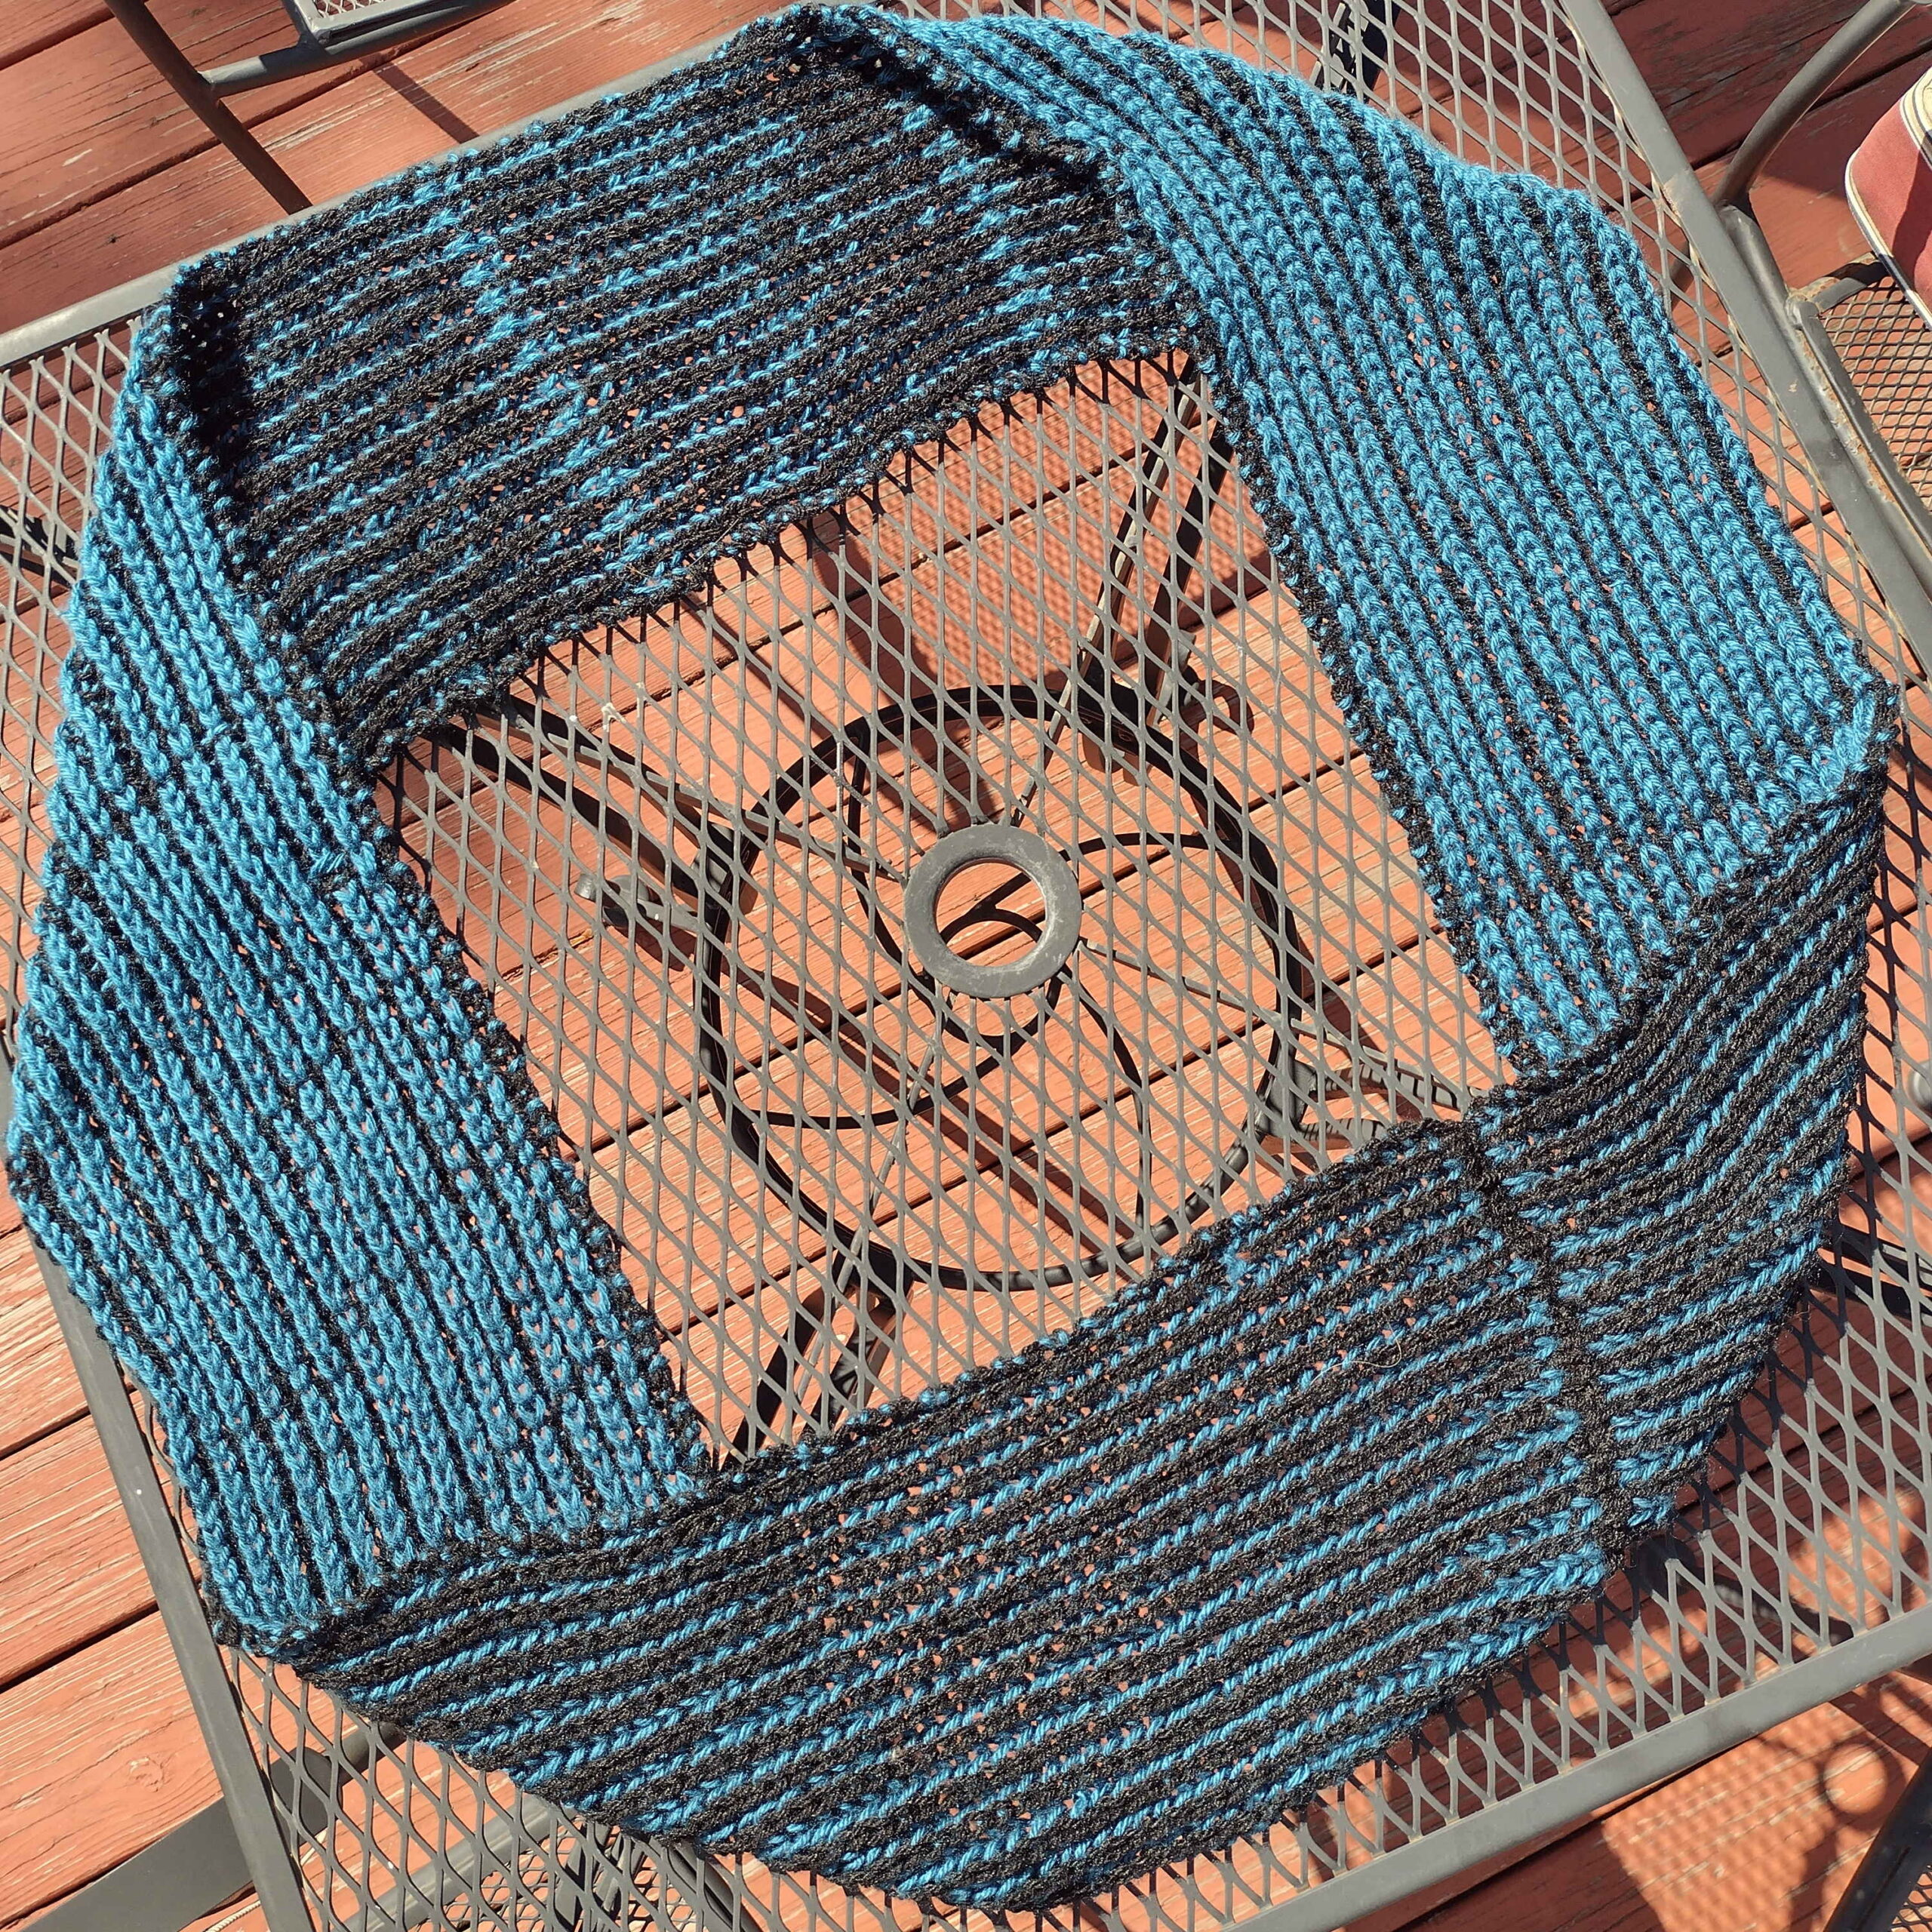 Picture of a turqoise-and-black ribbed scarf arranged in a loop on a wire-topped patio table